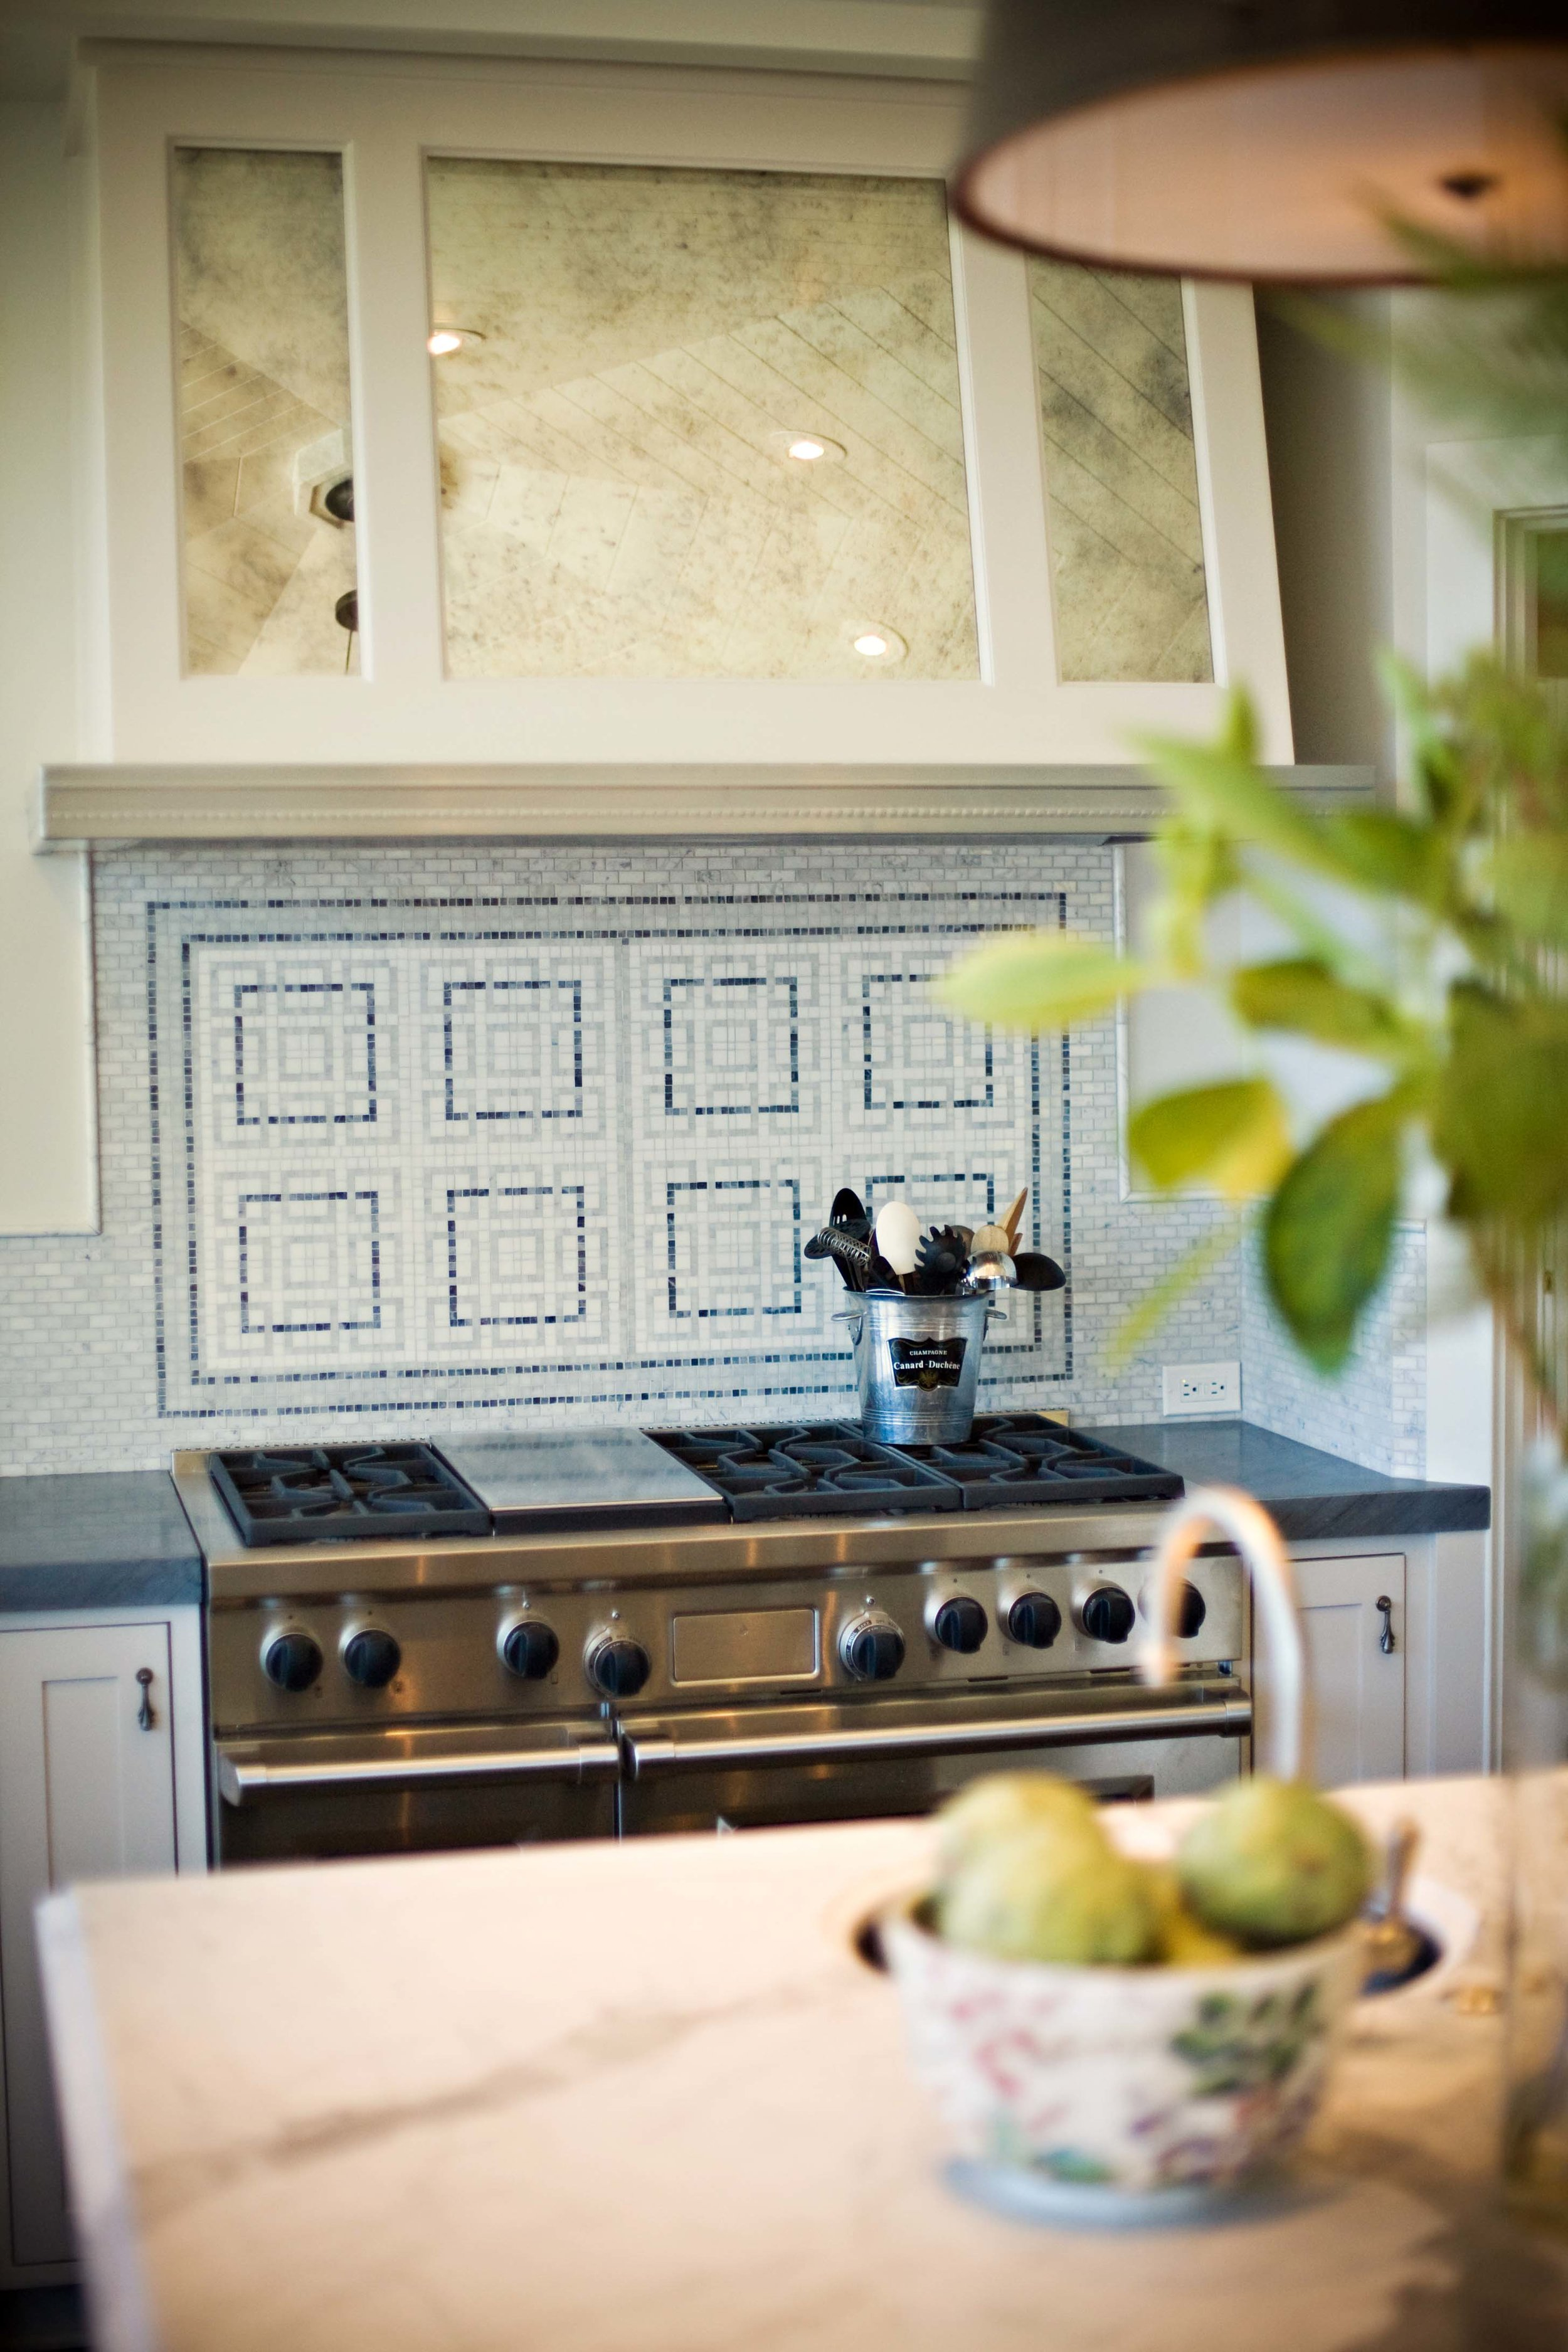 Details defined: This bespoke marble mosaic backsplash paired with the antique mirrored hood add interest.